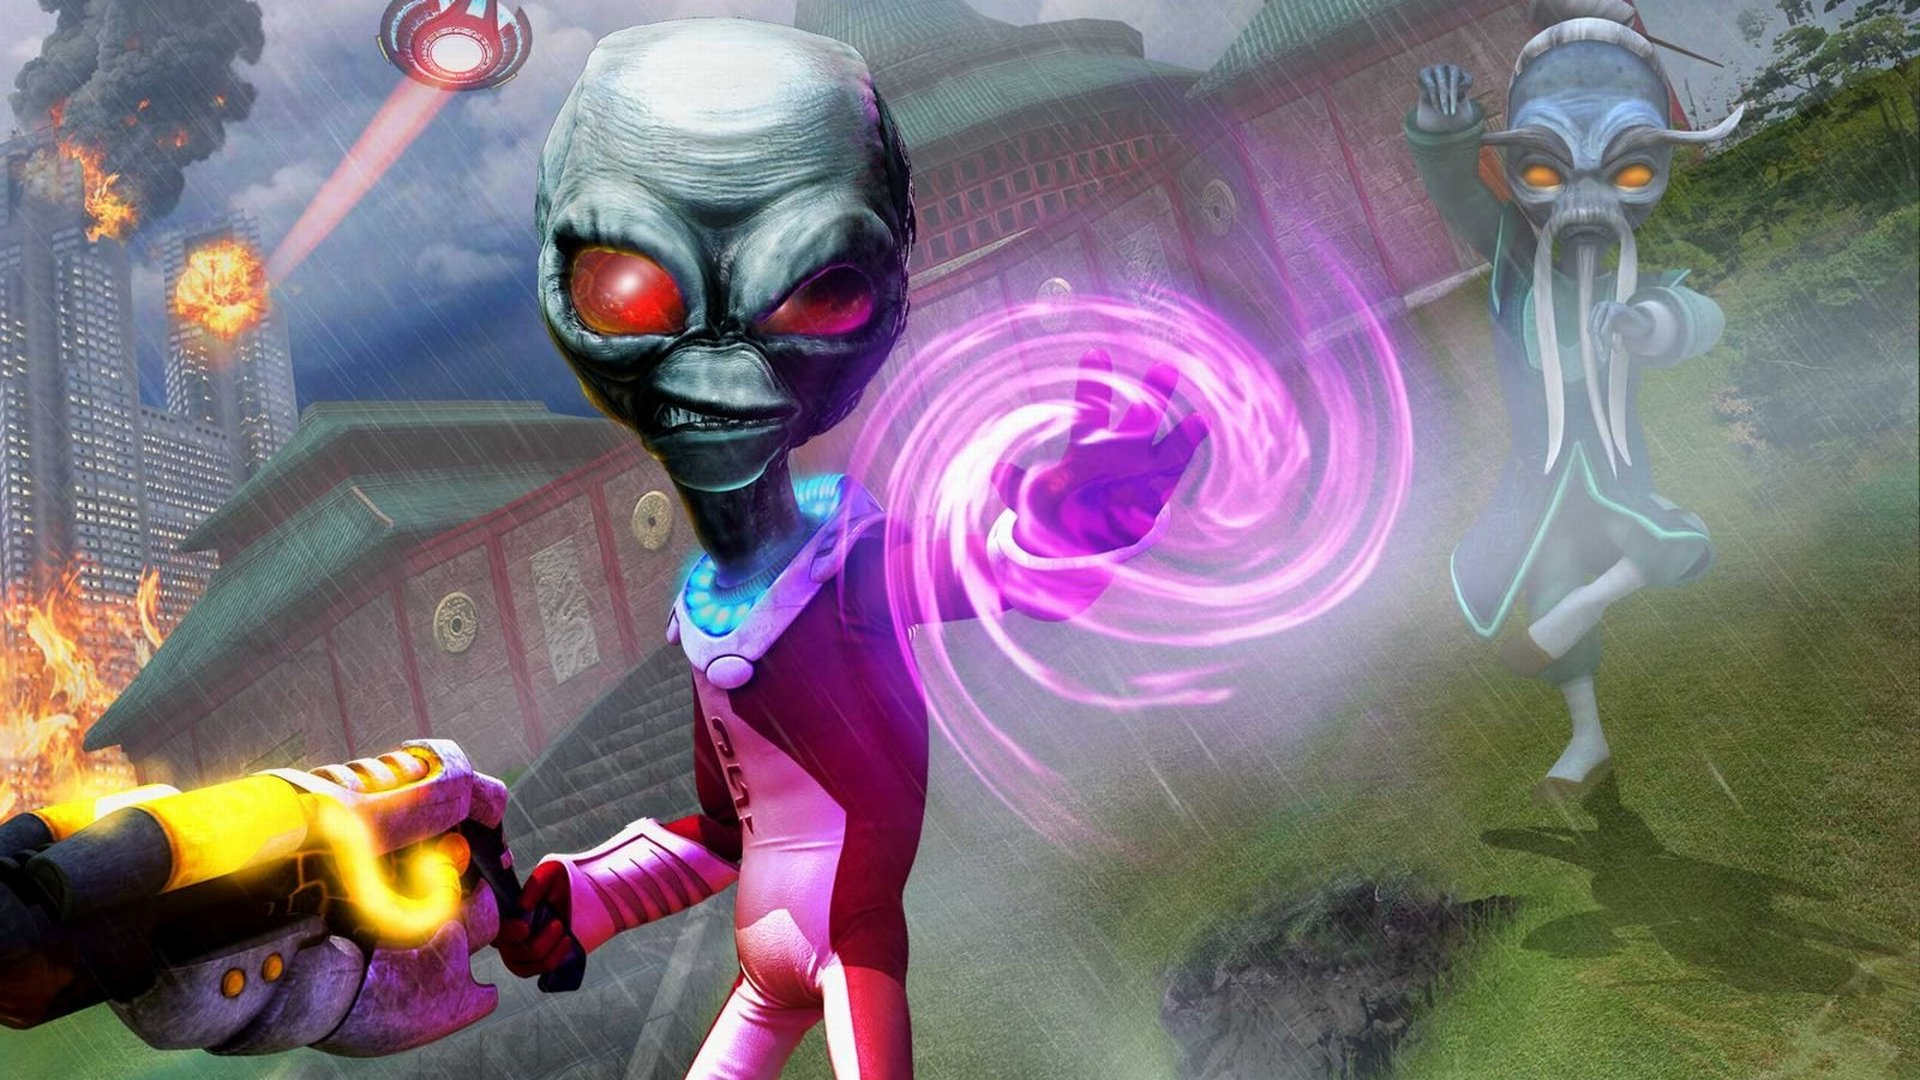 3d Wallpaper App Download Destroy All Humans 2 Details Launchbox Games Database